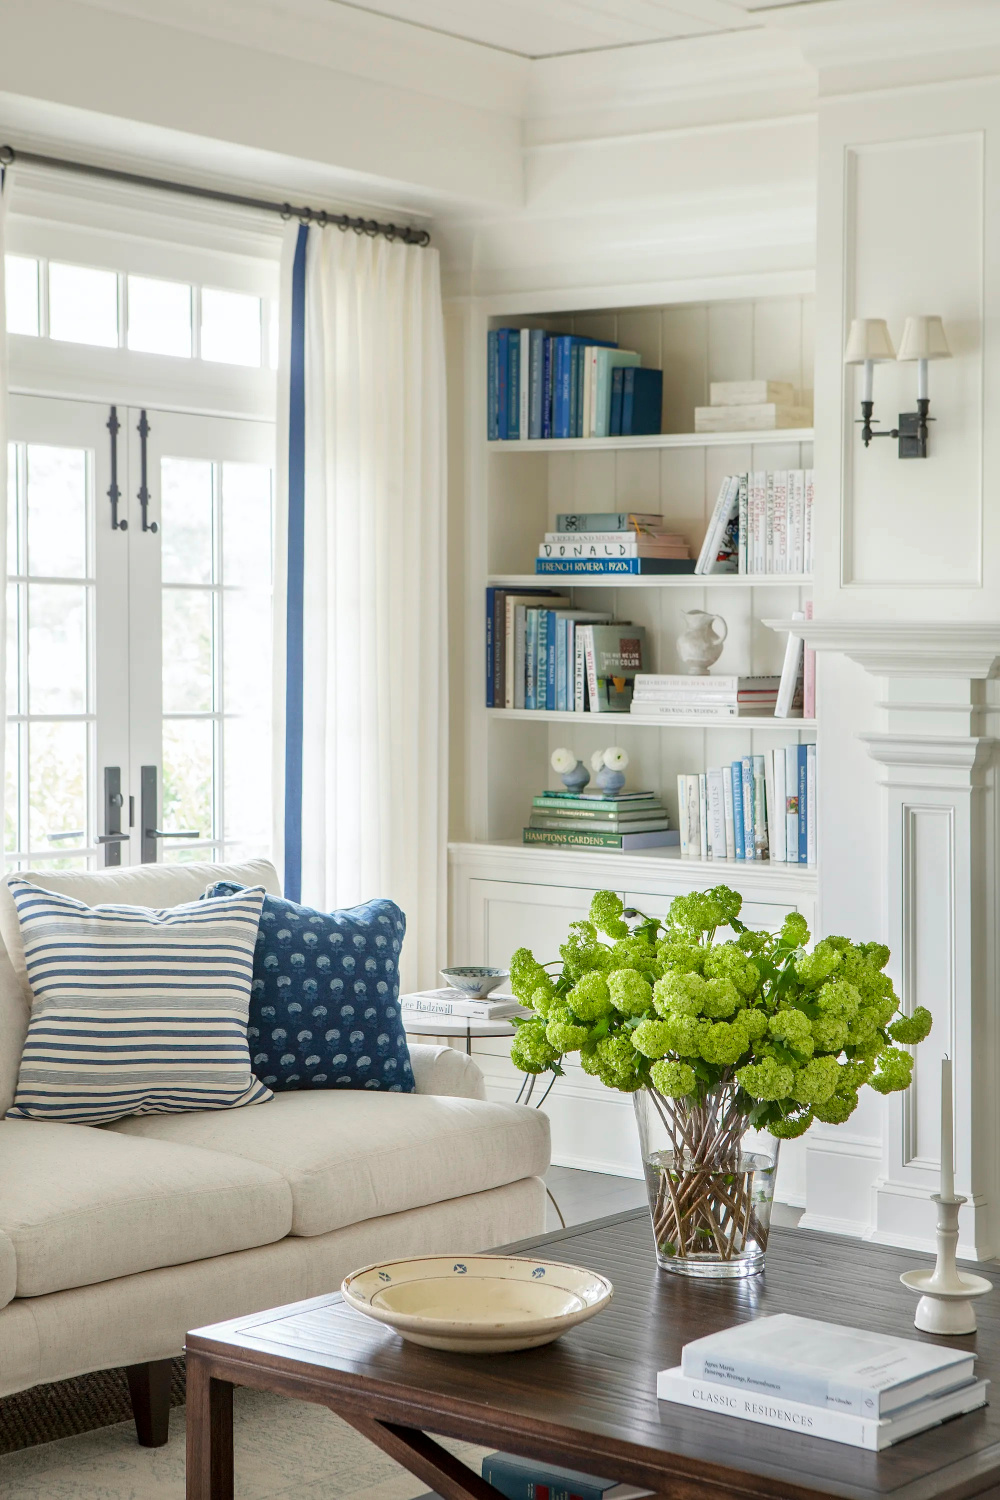 Decorating With Blue & White Stripes   Beautiful House in 2021   Home living room, Family ...